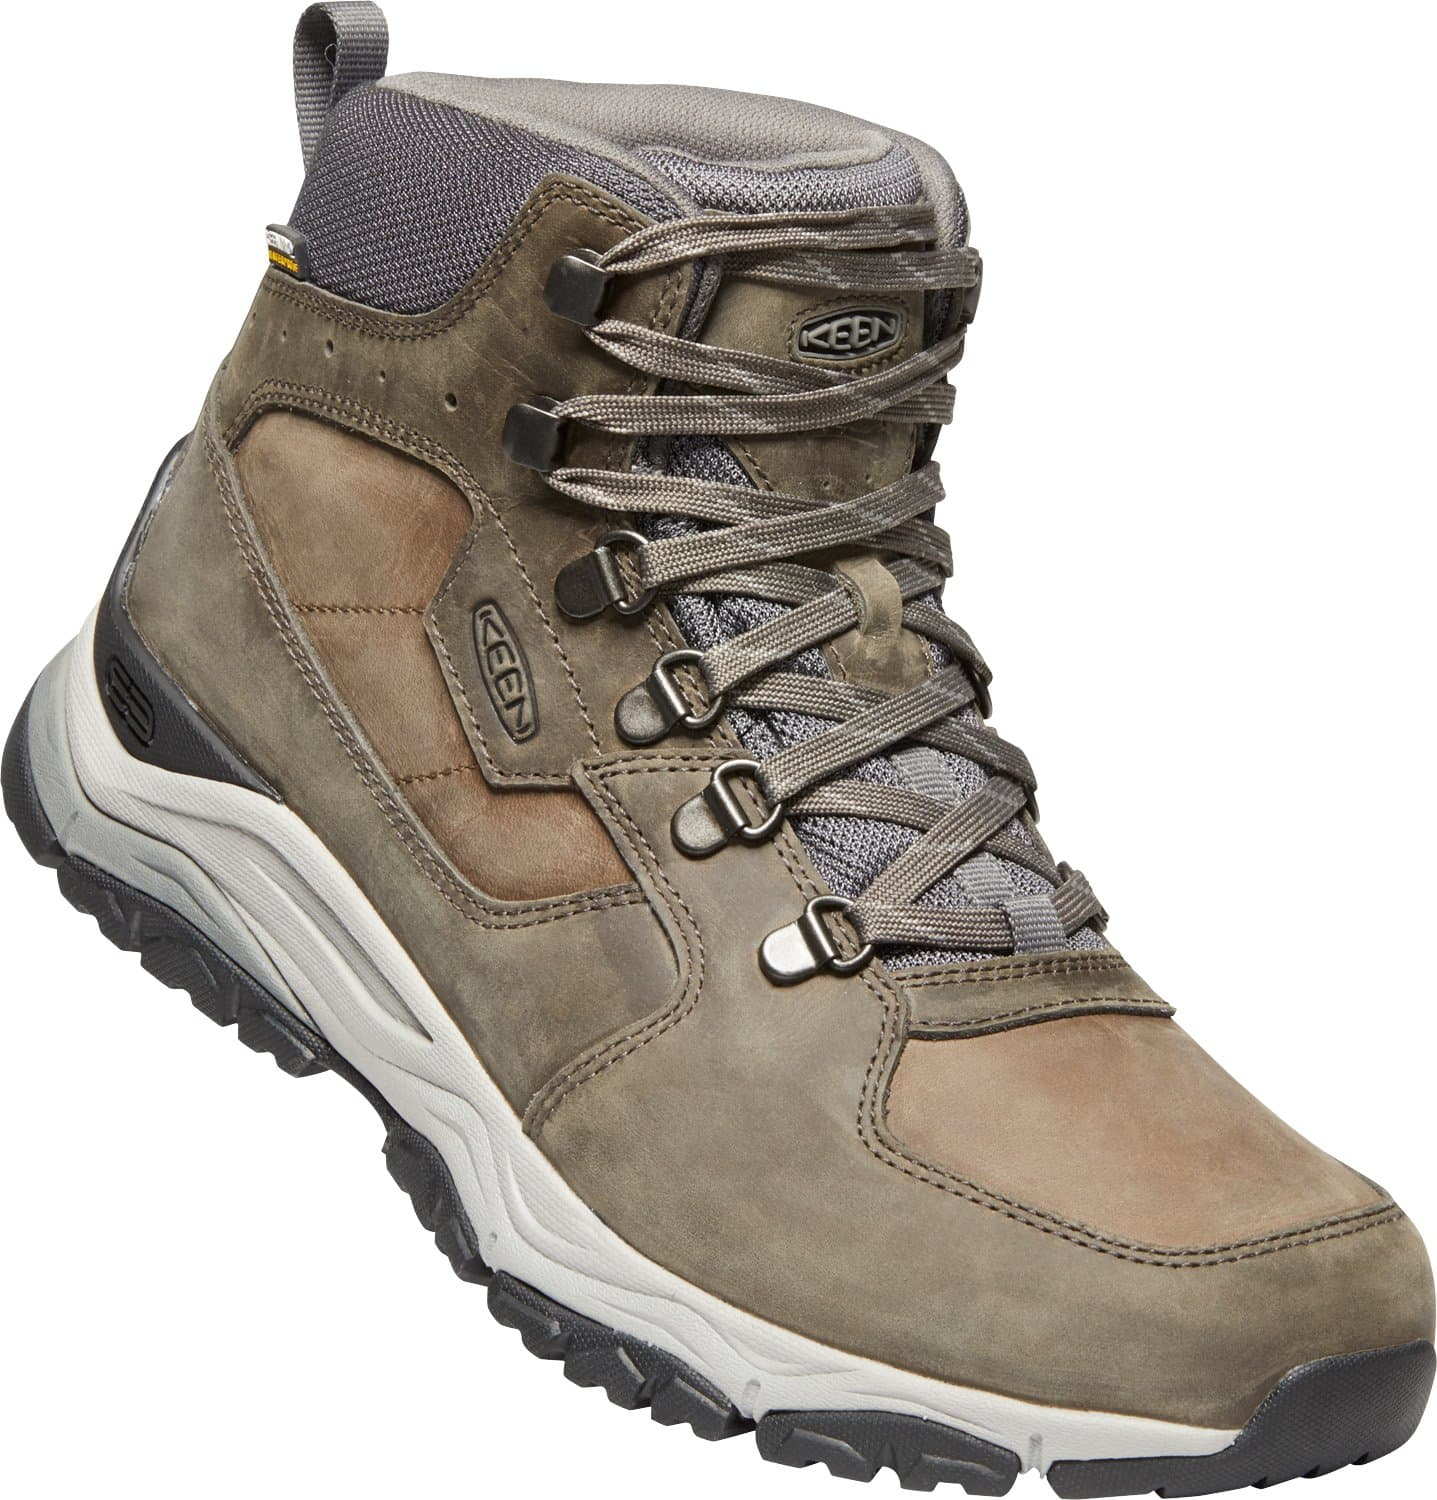 Keen Innate Leather Mid WP Scarponcino da escursione uomo